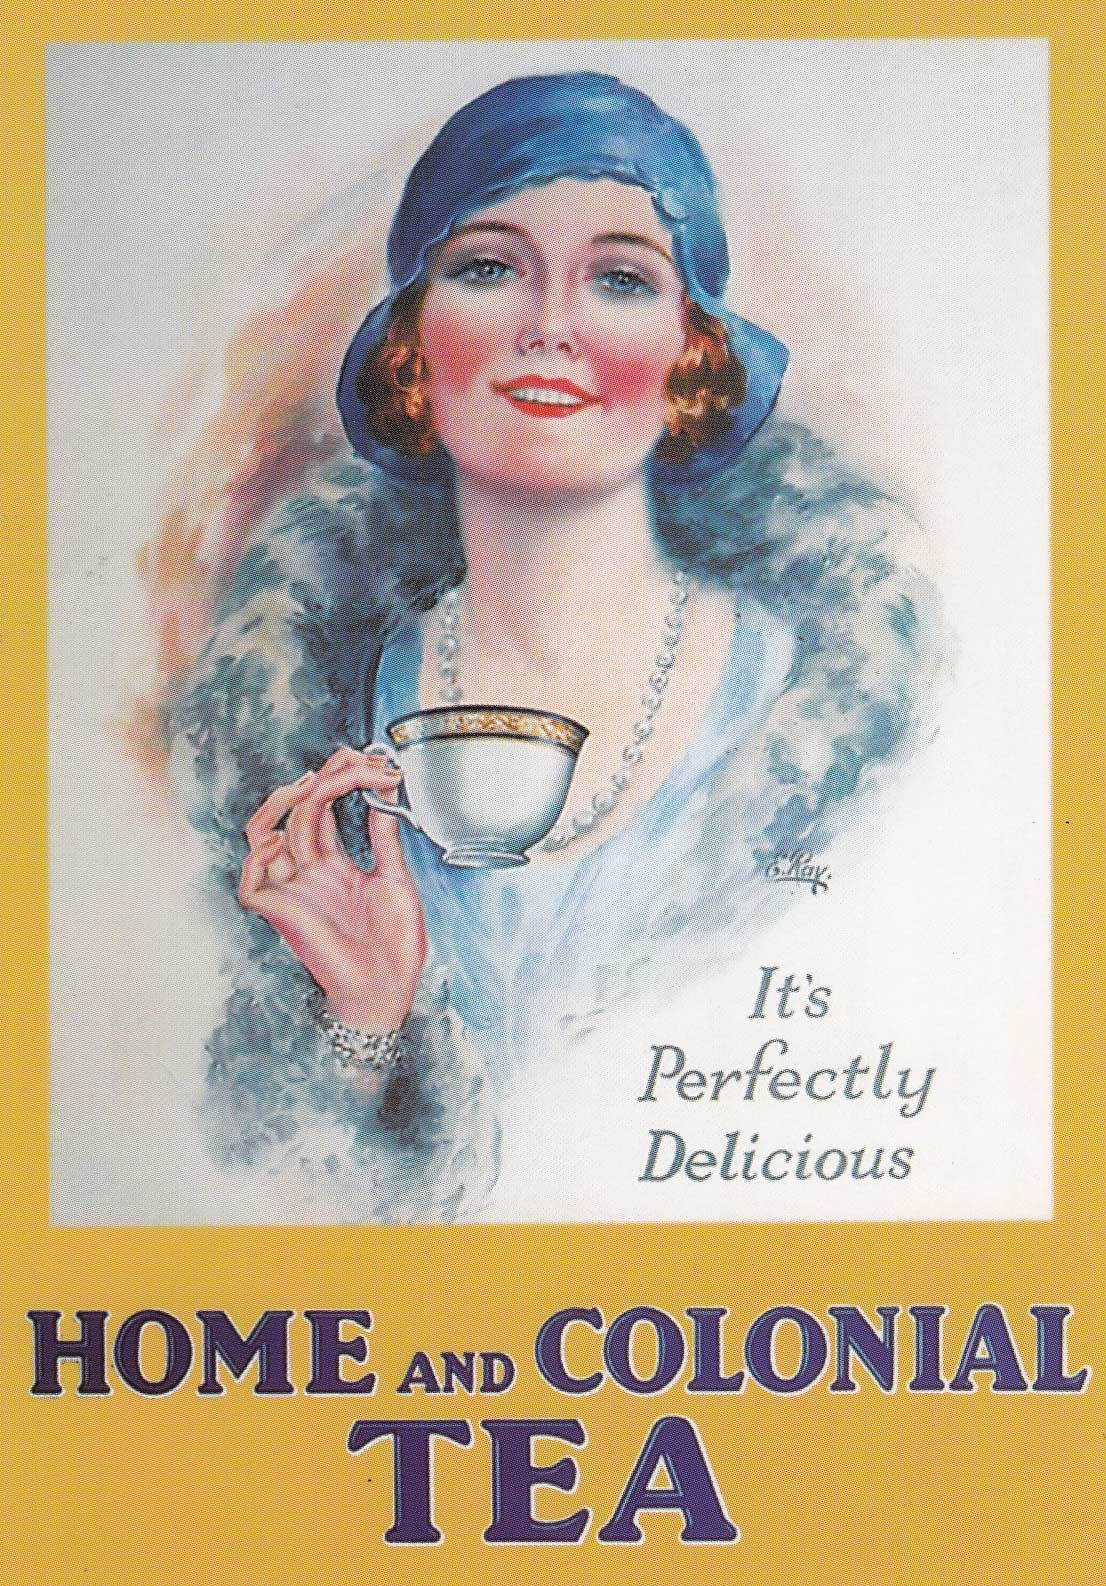 """Home and Colonial Tea advertising poster with """"It's ..."""